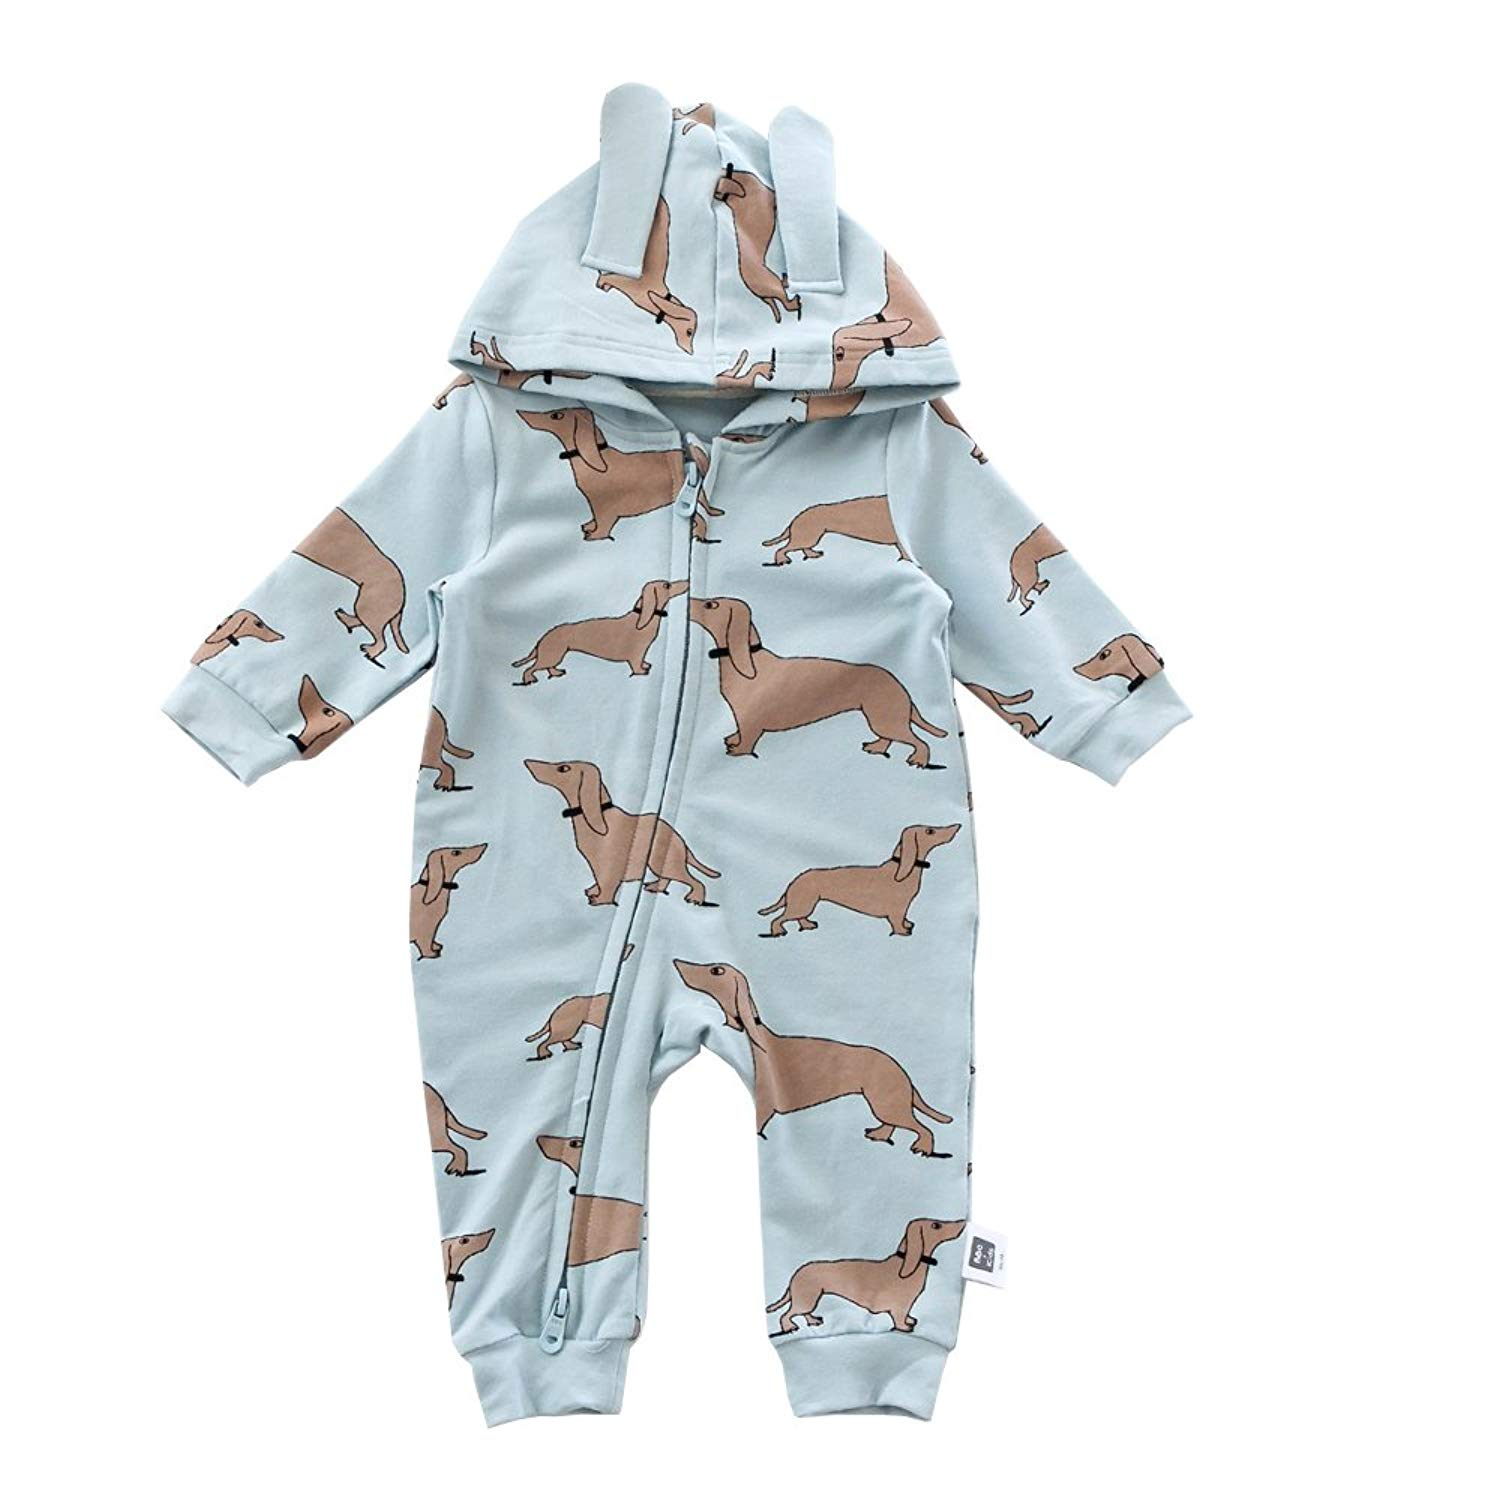 458bd161c4ce2 Get Quotations · Baby Jumpsuits Cotton Cute Cartoon Dog Pattern Rompers